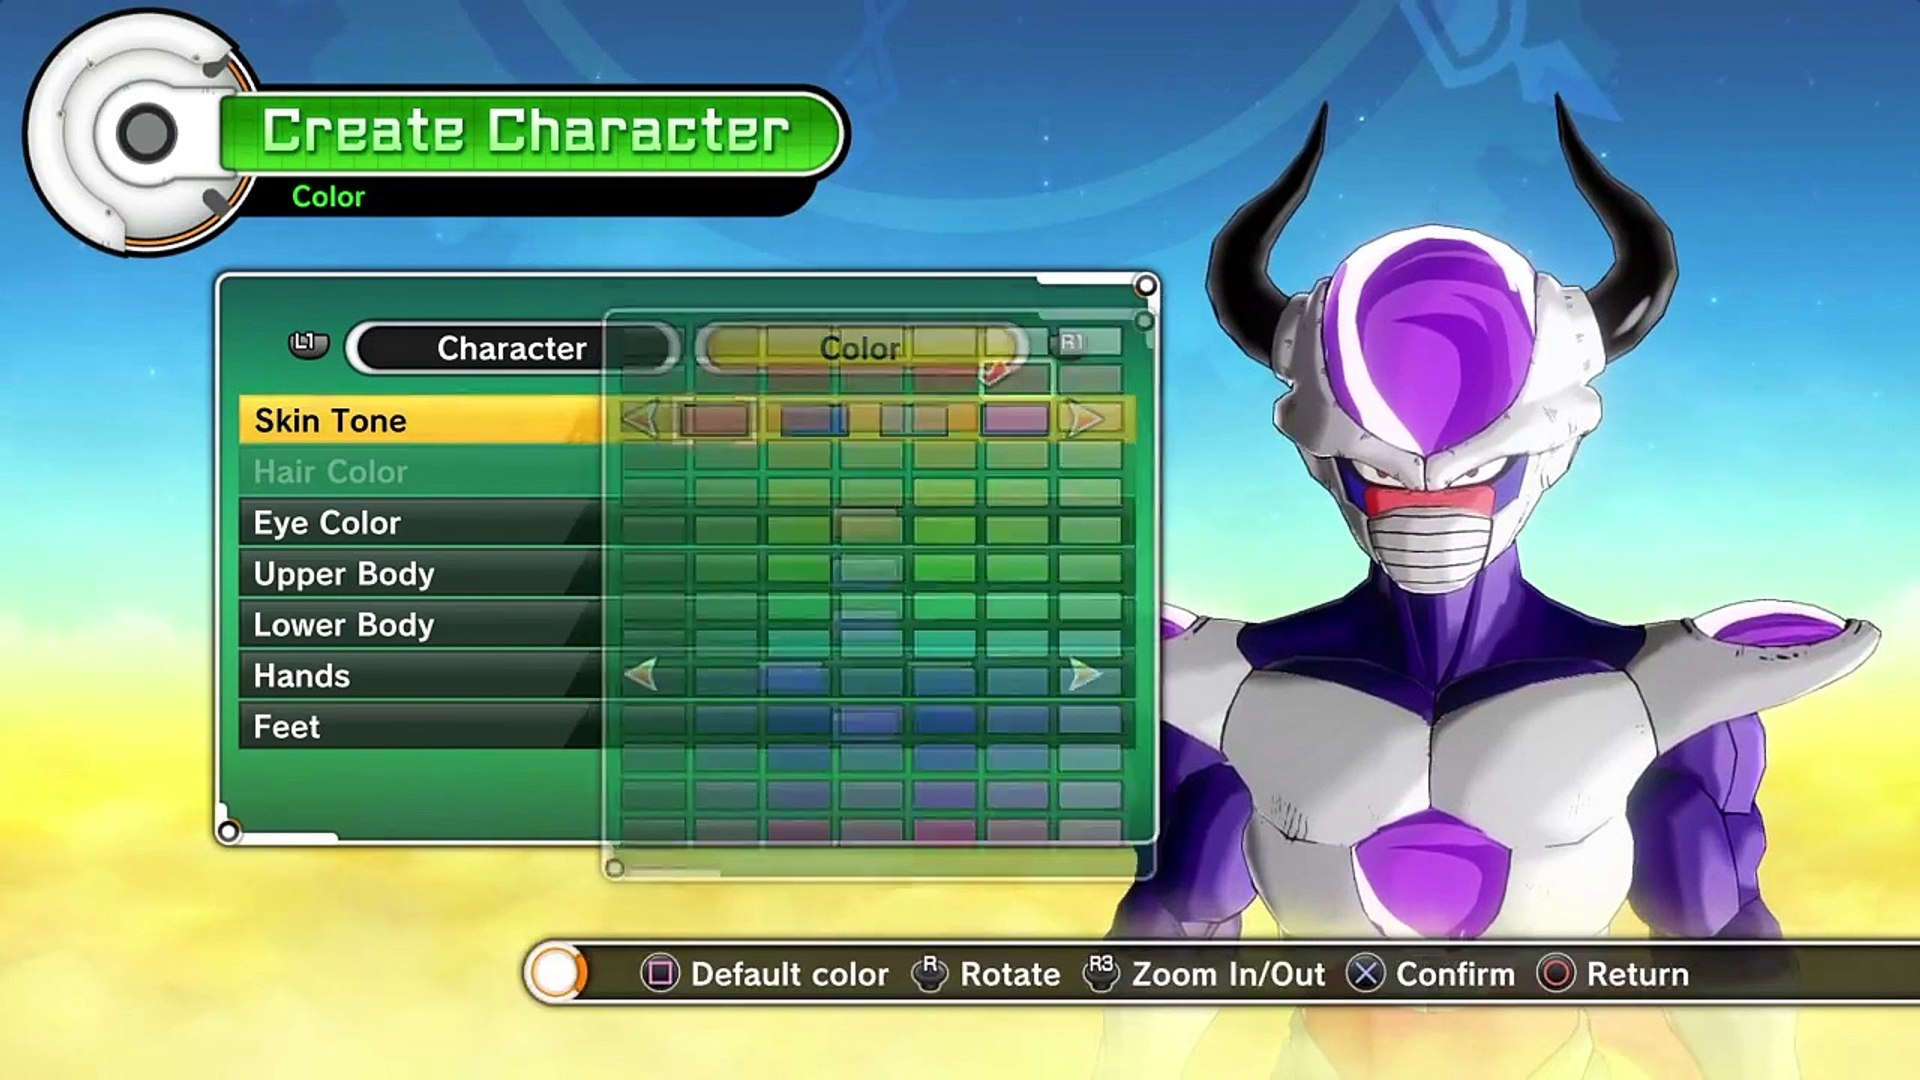 Dragon Ball Xenoverse Frieza Race Character Creation Video Dailymotion